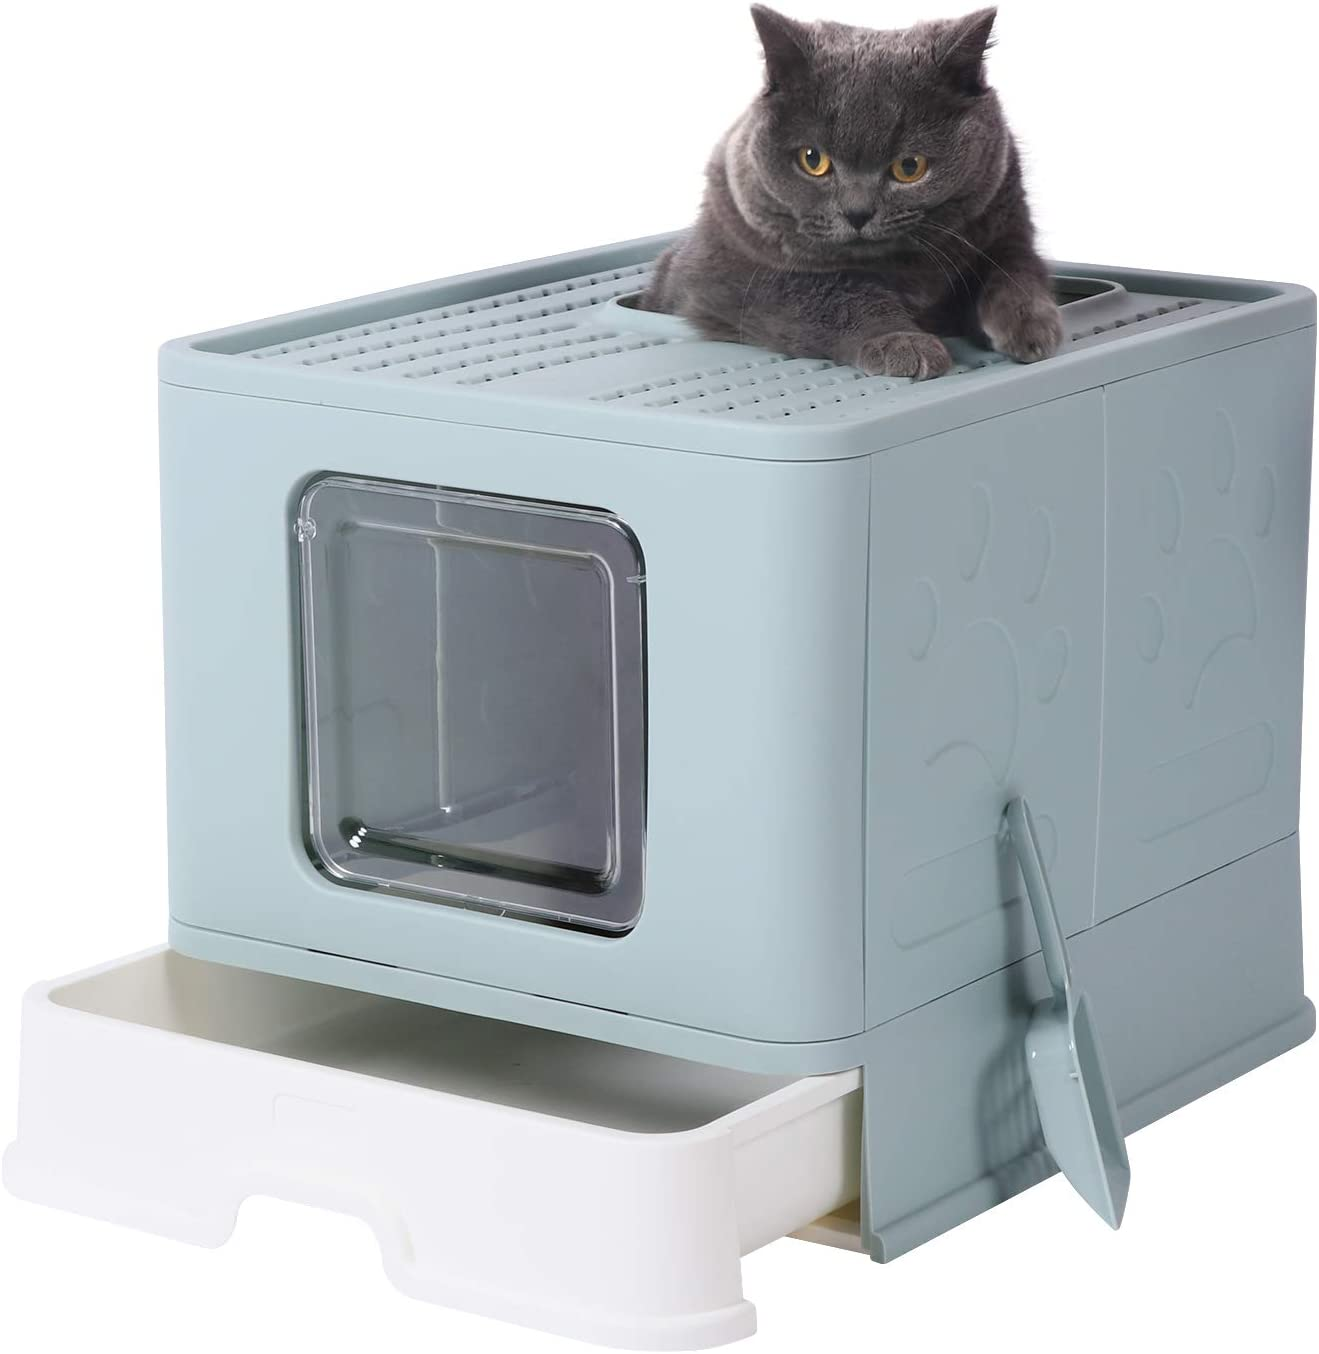 GENENIC Max 64% OFF Top Max 49% OFF Entry Cat Litter Foldable Box Scoop with